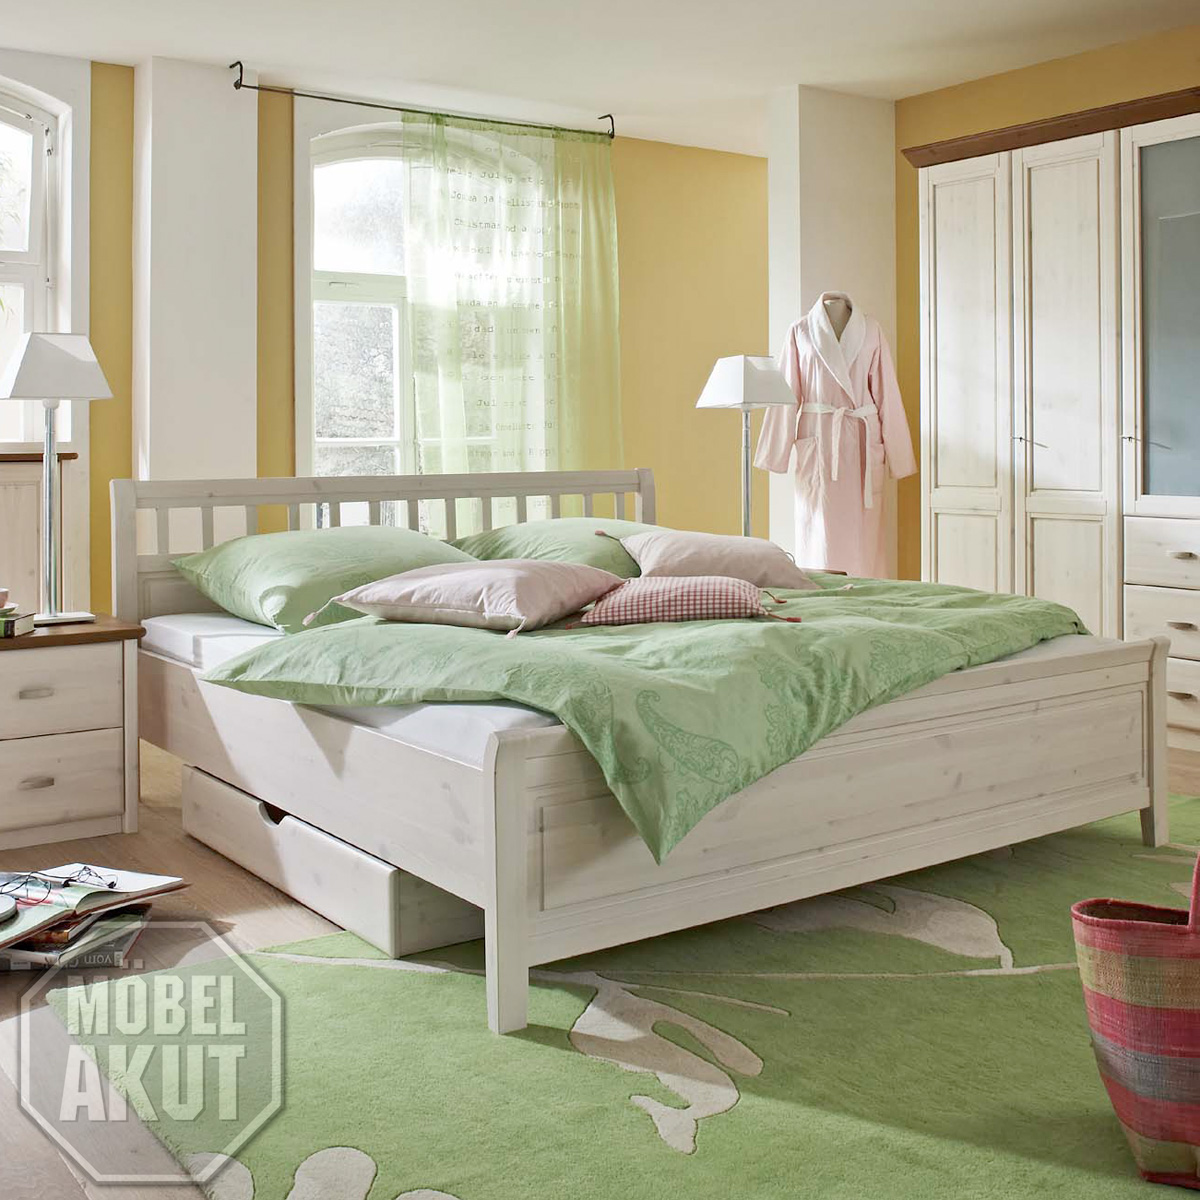 bett soeren sprossenbett doppelbett in kiefer massiv wei 180x200 ebay. Black Bedroom Furniture Sets. Home Design Ideas